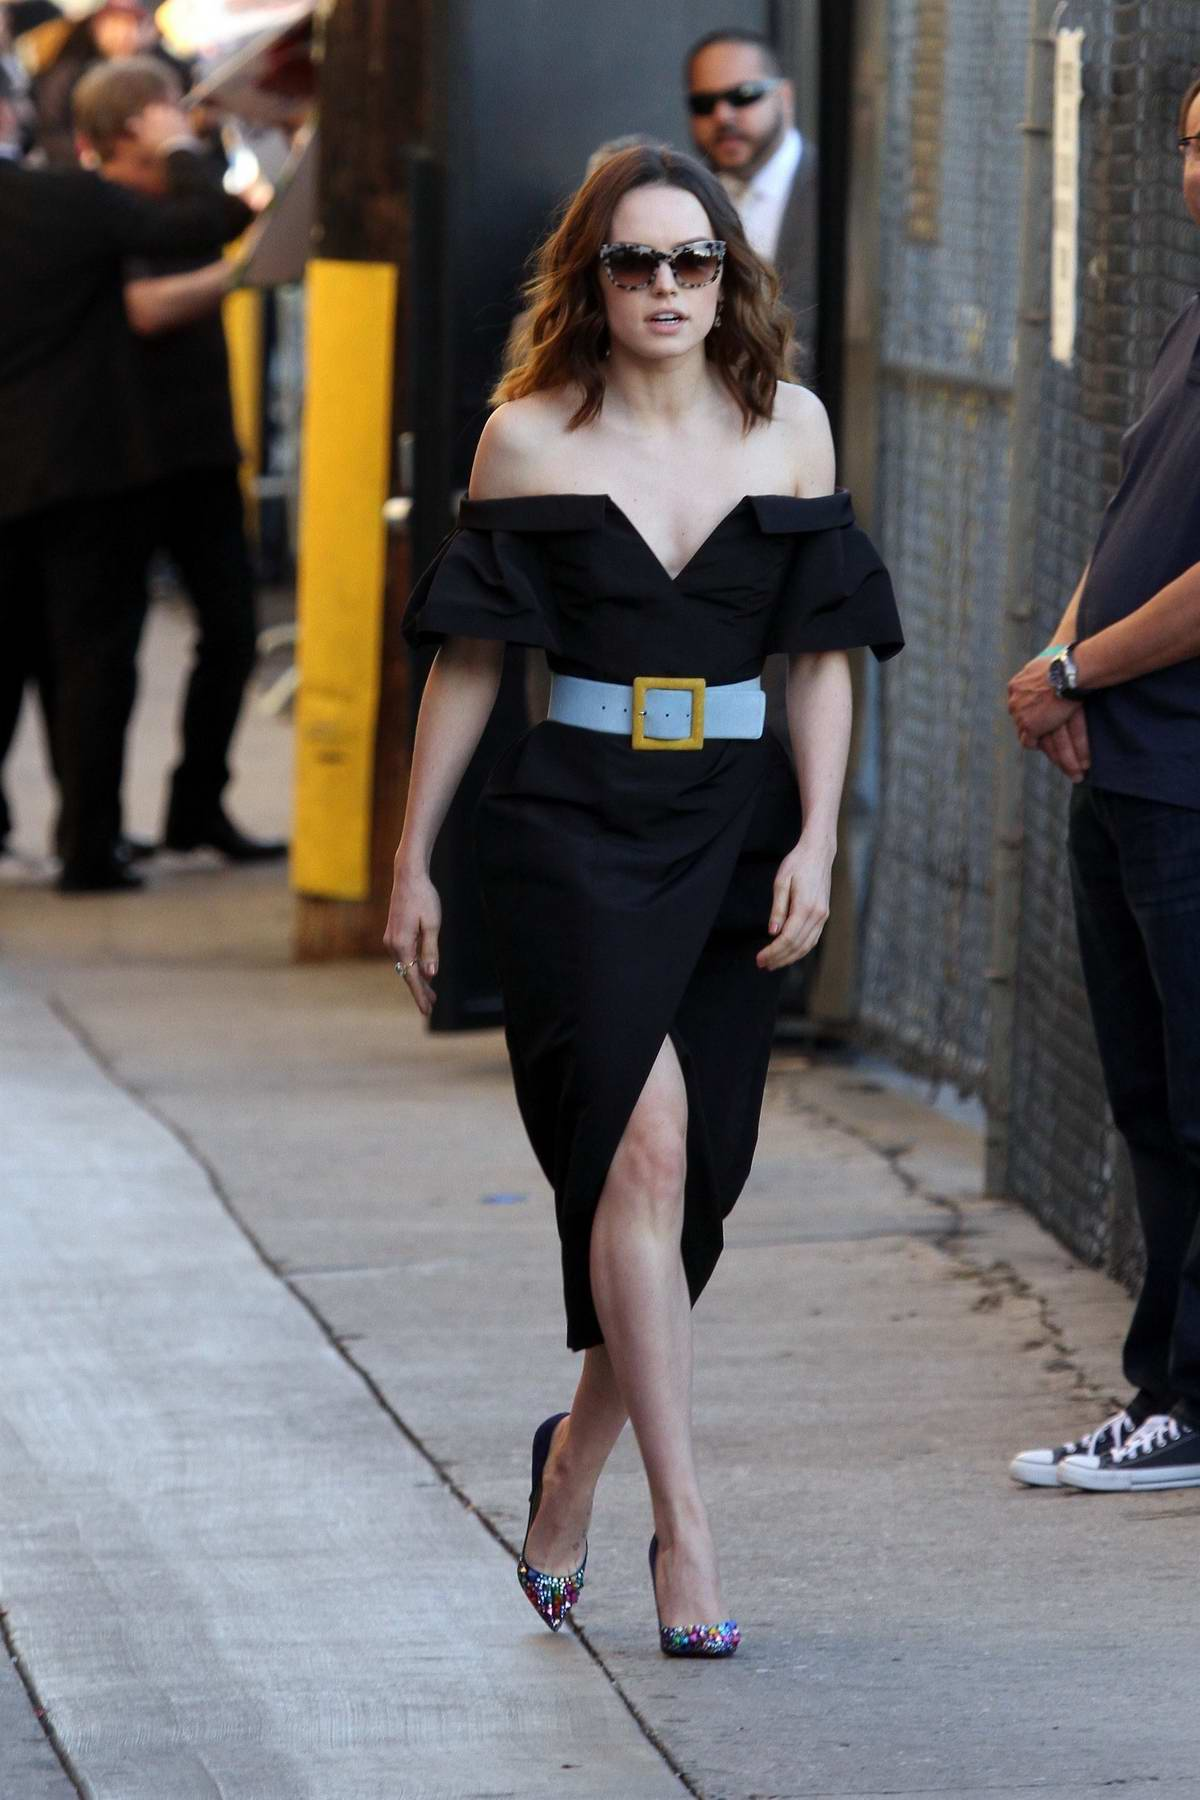 Daisy Ridley make an appearance at Jimmy Kimmel Live in Los Angeles